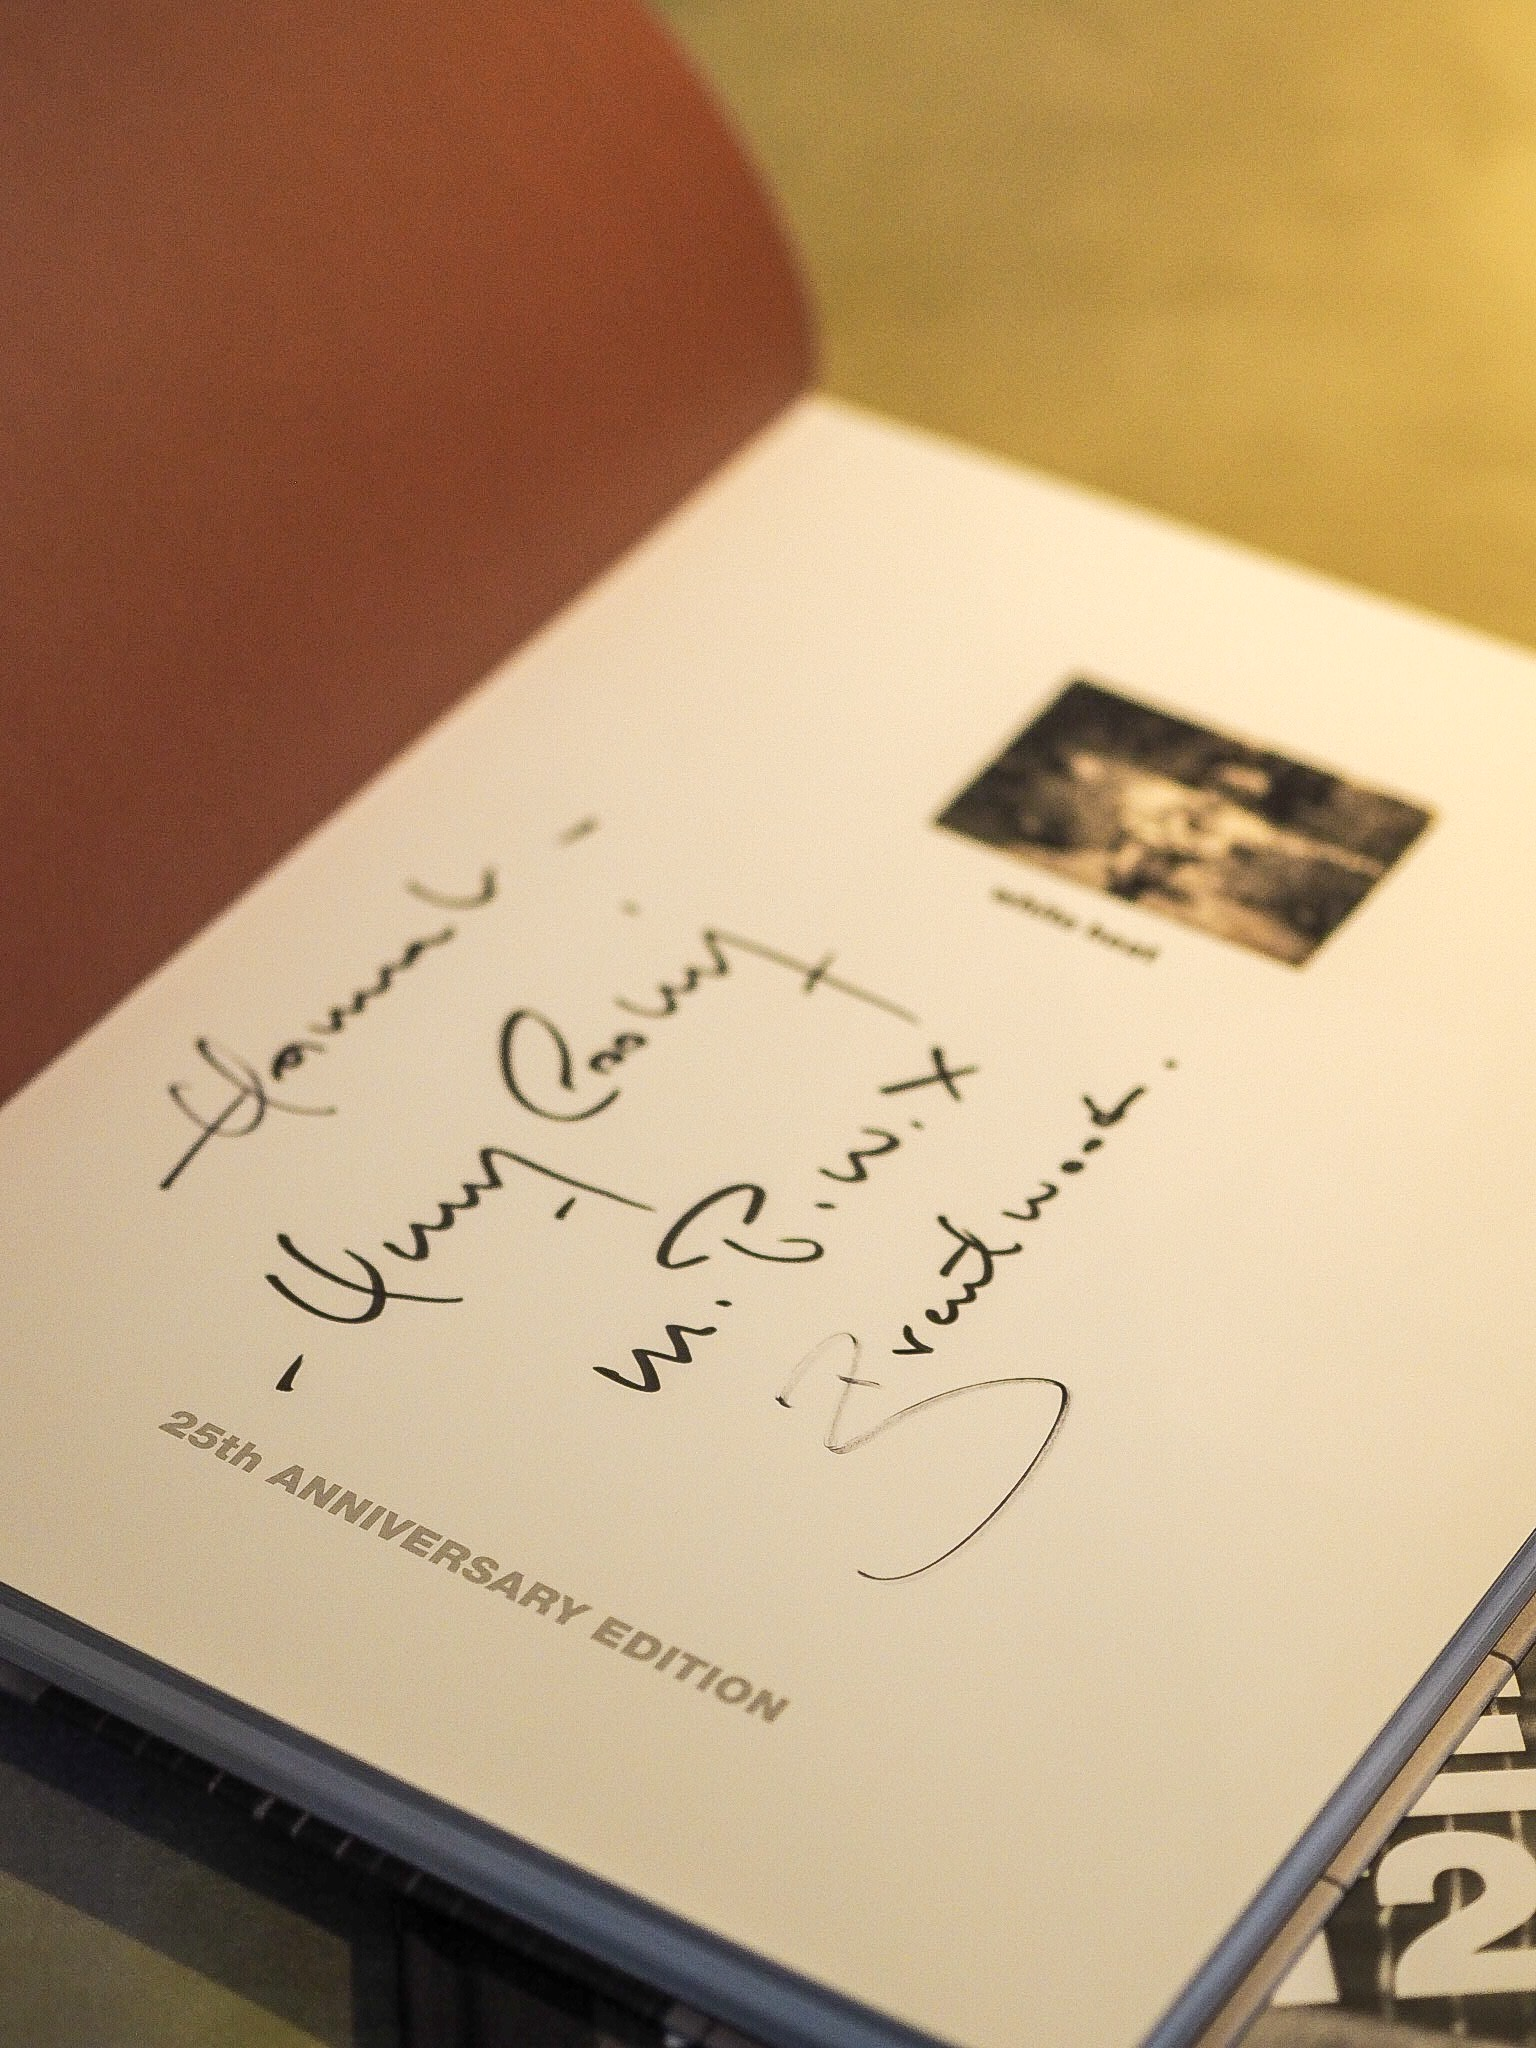 signed book at the marco pierre white restaurant at the holiday inn in brentwood